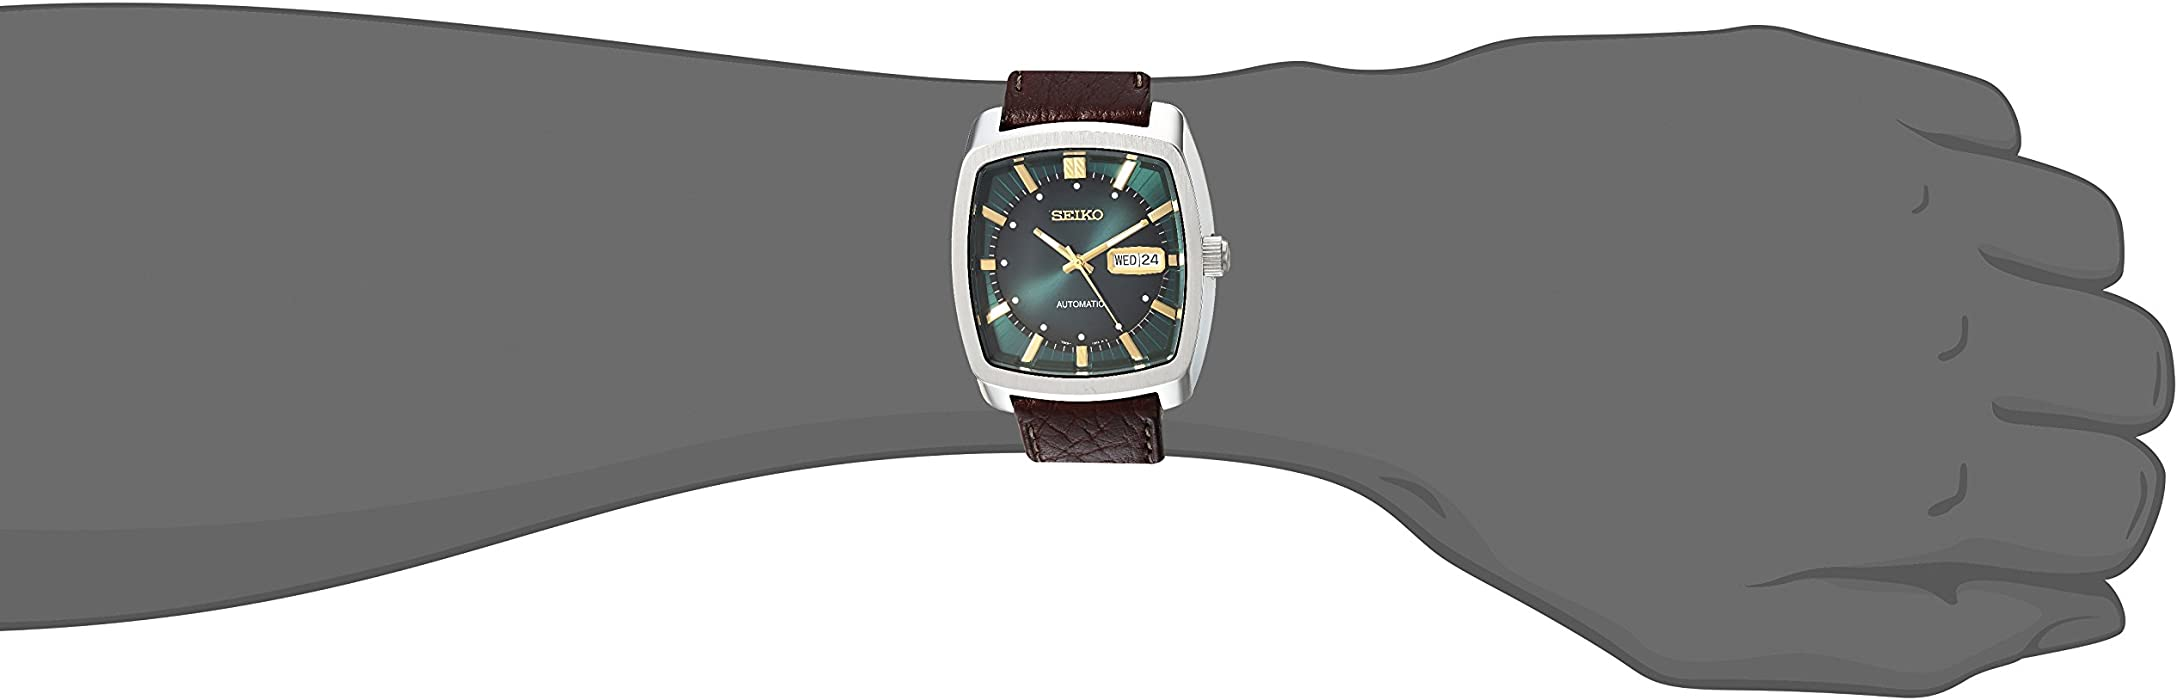 Seiko Men Recraft Series Automatic Leather Casual Watch Model SNKP27